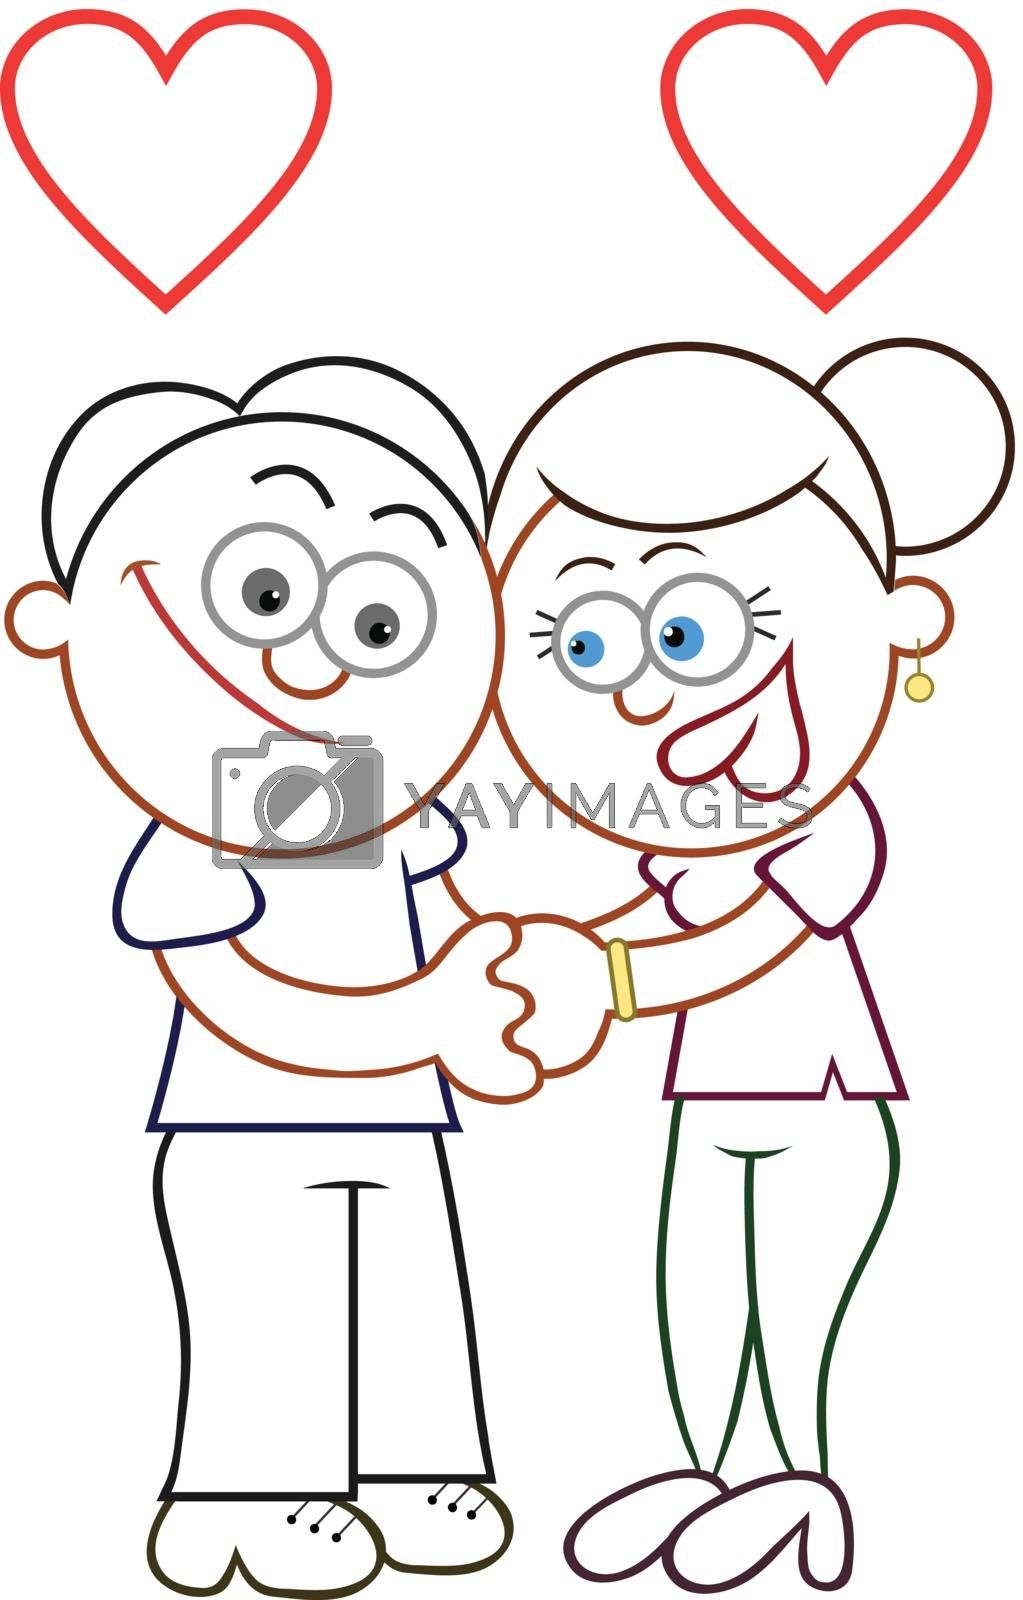 Cartoon man and woman holding hands with two love hearts.